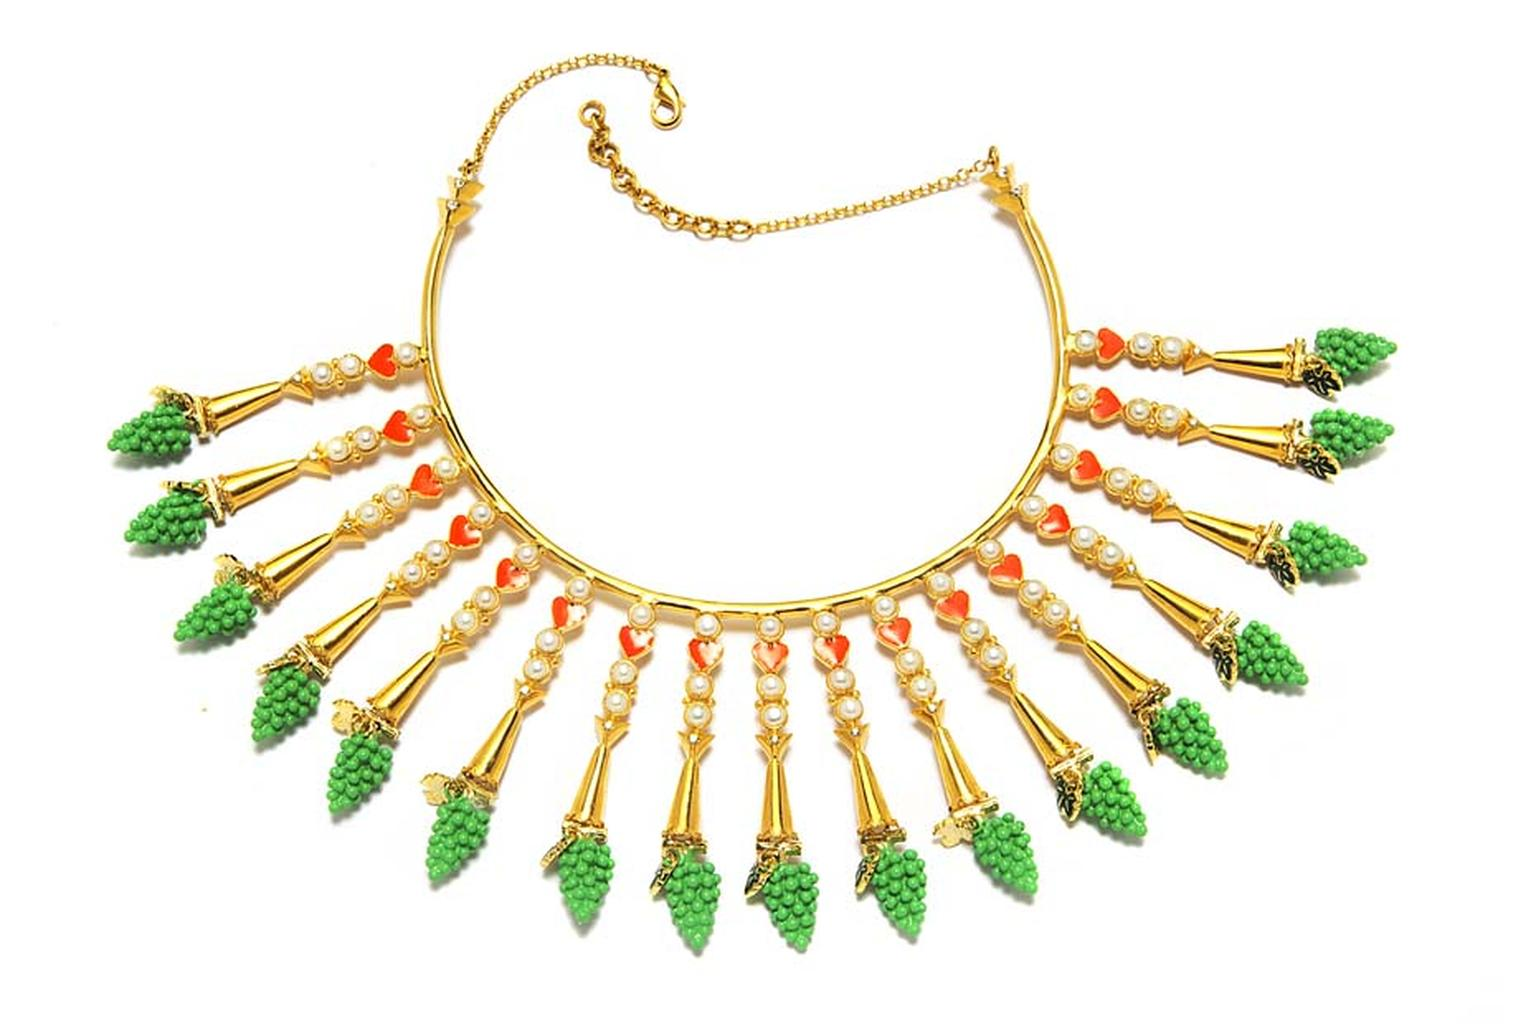 Manish Arora for Amrapali Naho enamelled necklace with Swarovski pearl beads.